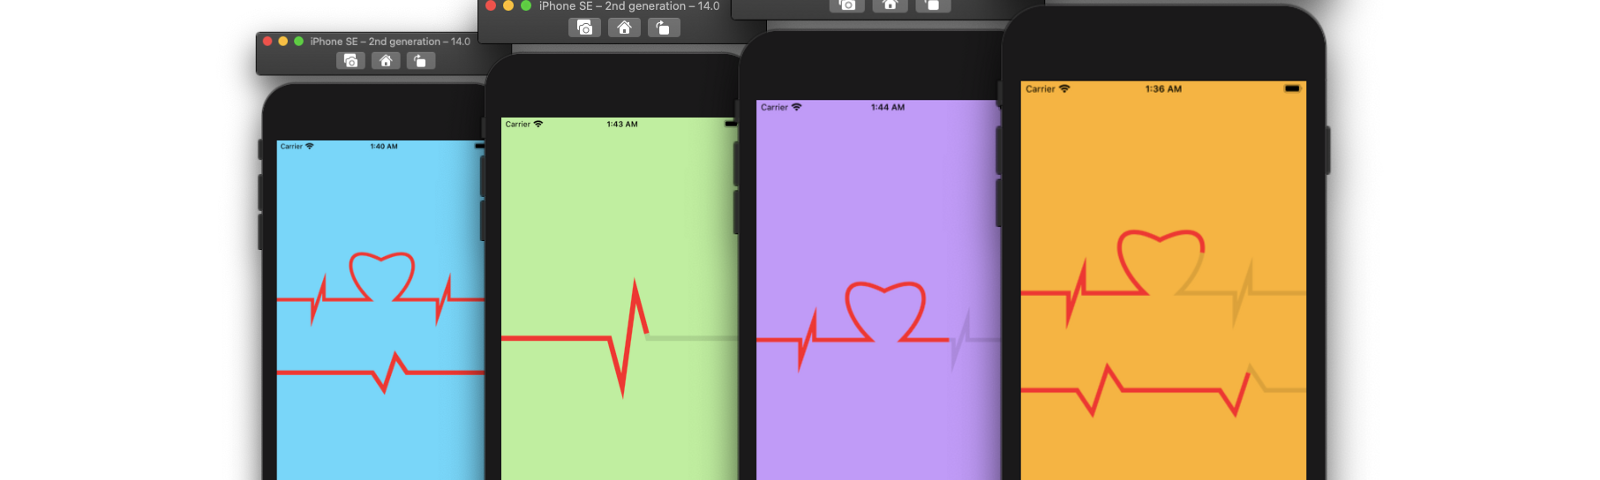 Animated heartbeat shape